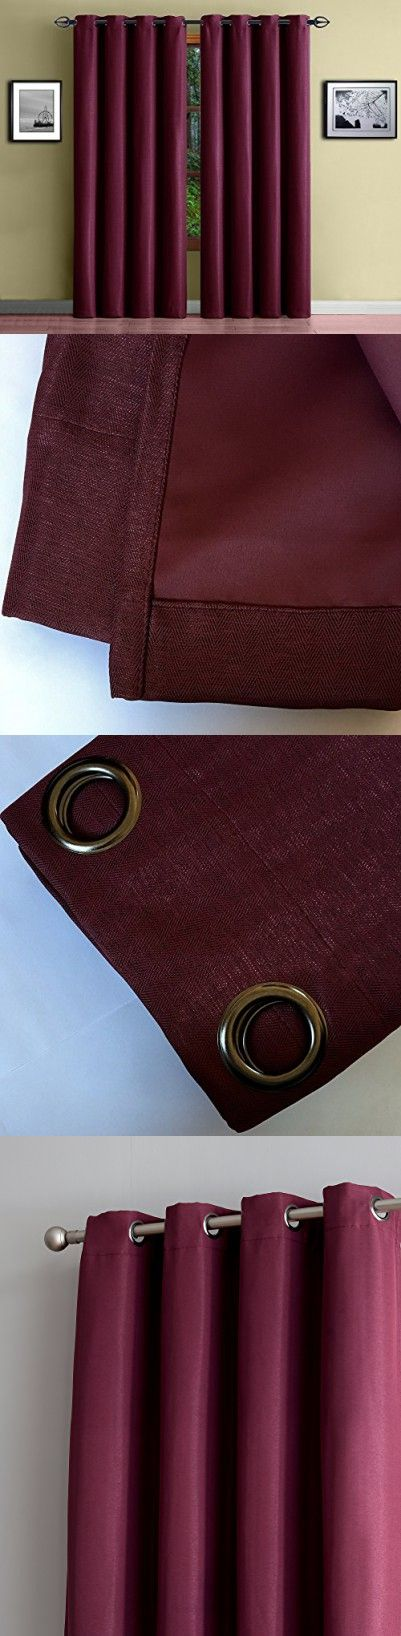 """Warm Home Designs 1 Panel of Burgundy Red Thermal Blackout Curtains with Grommets. Extra Wide, Energy Saving, Room Darkening Insulated Window Drapes are 54"""" X 96"""" Inches In Size. Burgundy 96"""